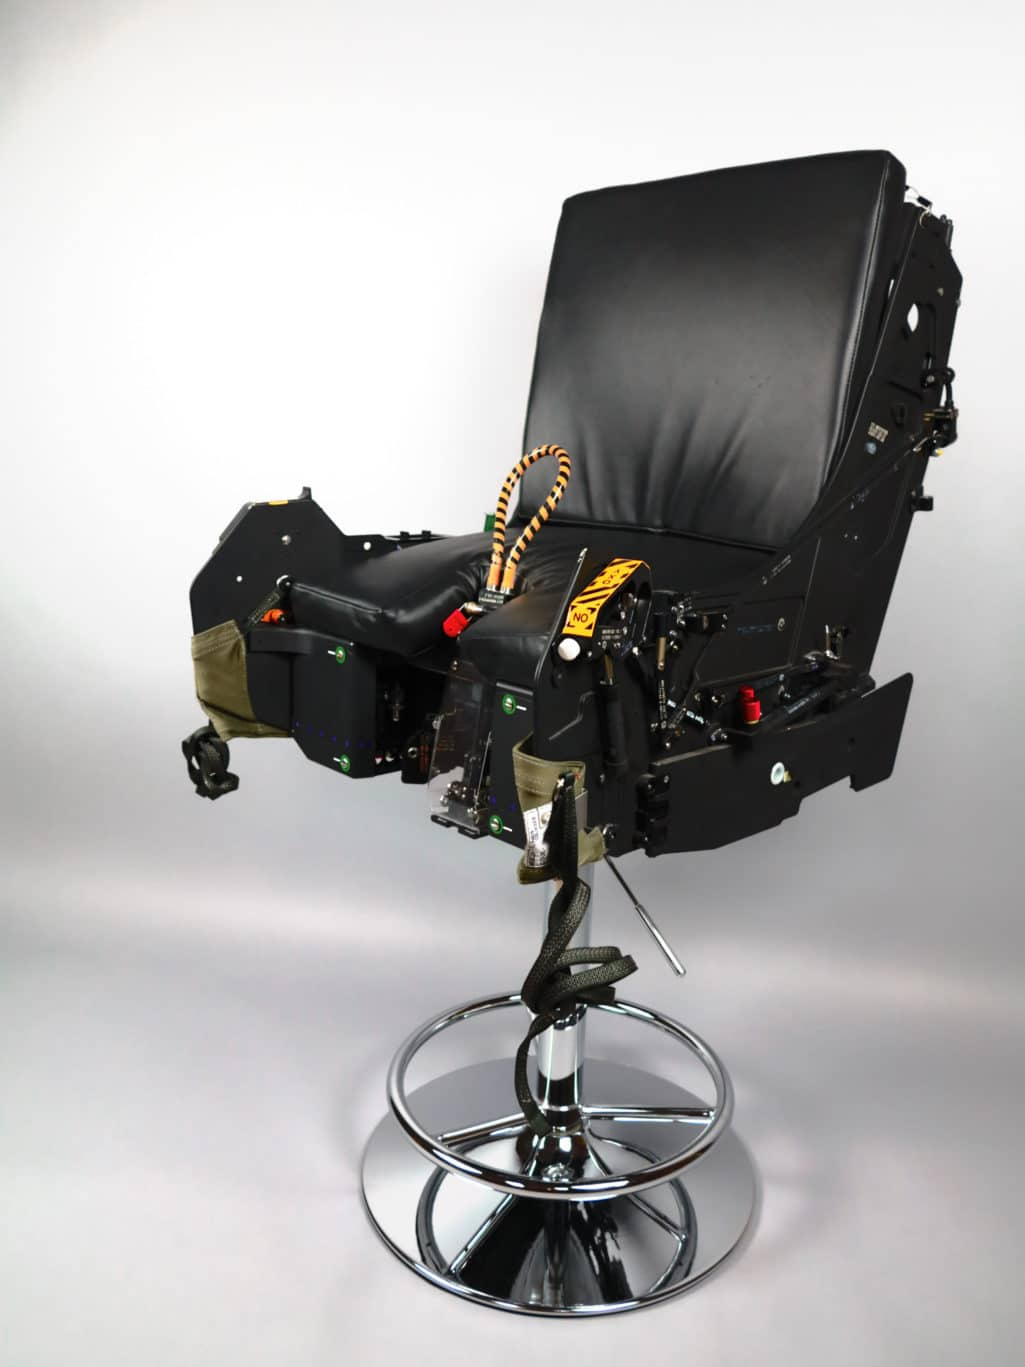 Martin Baker MK 16A Eurofighter Typhoon Ejection Seat (SOLD)